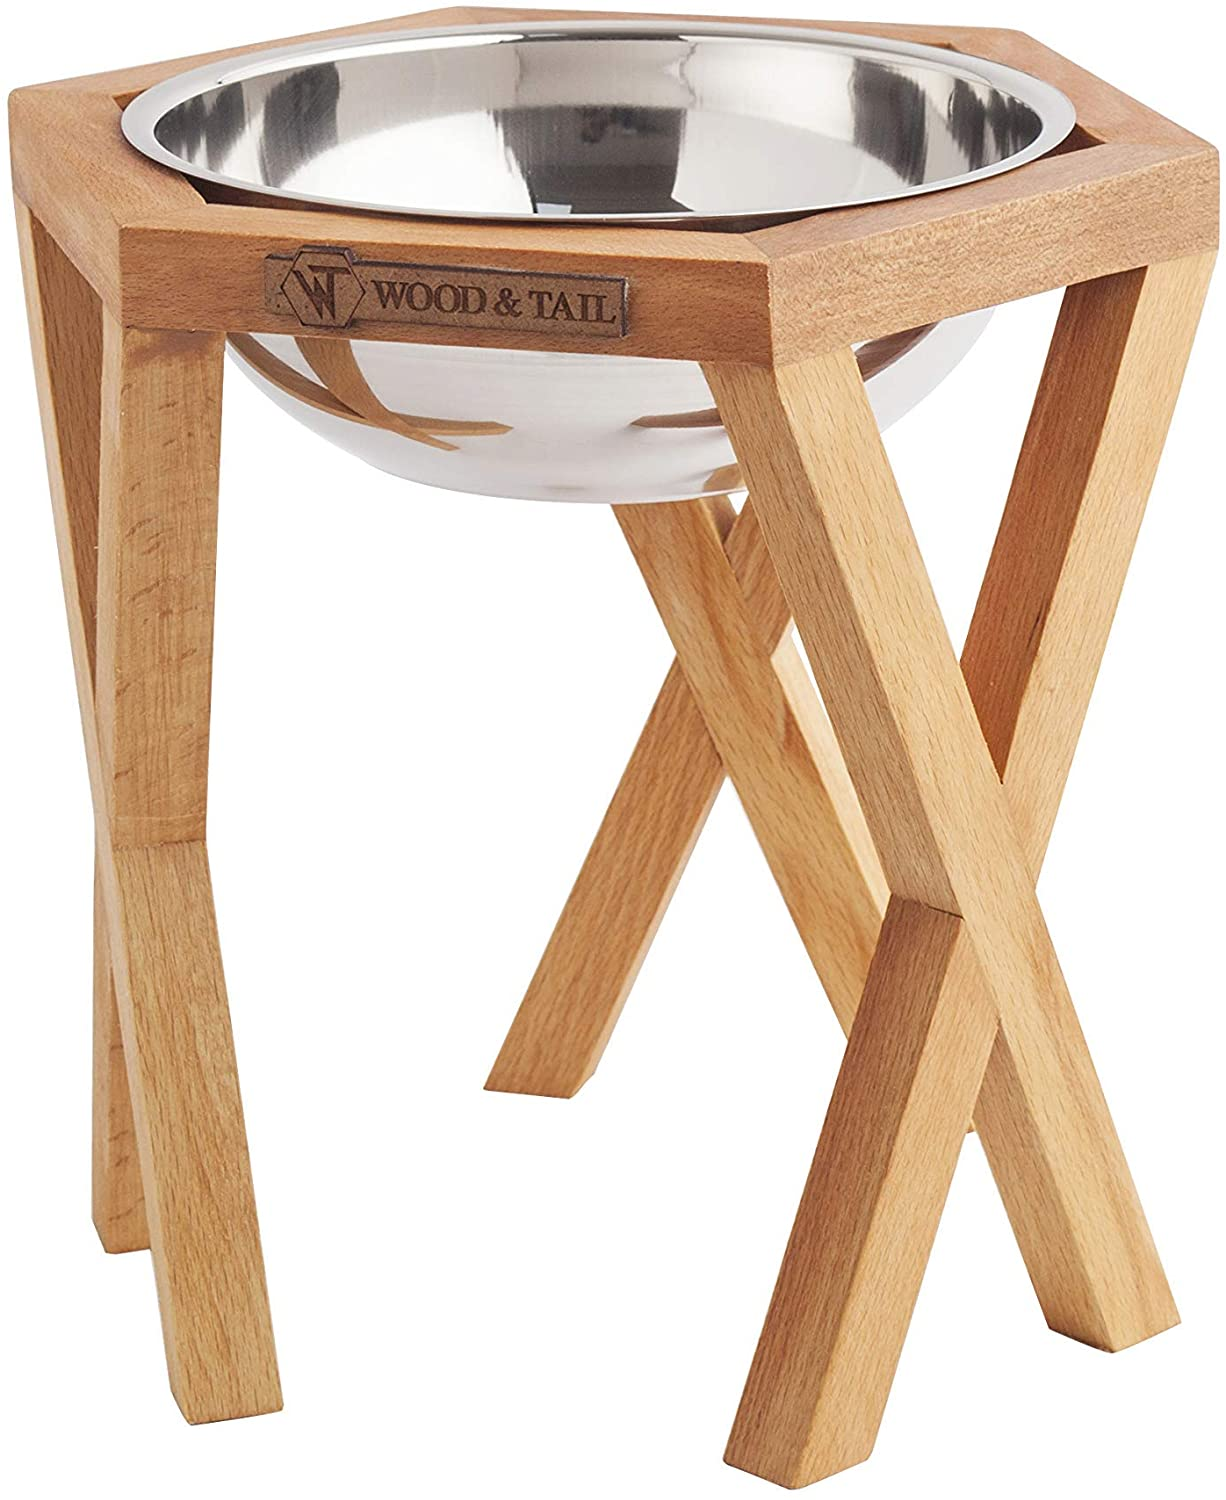 Dog Food Bowls Elevated Dog and Cat Stand,Elevated Dog and Cat Handmade Solid Wood Feeder, Raised Food and Water Stand with 2 Stainless Steel